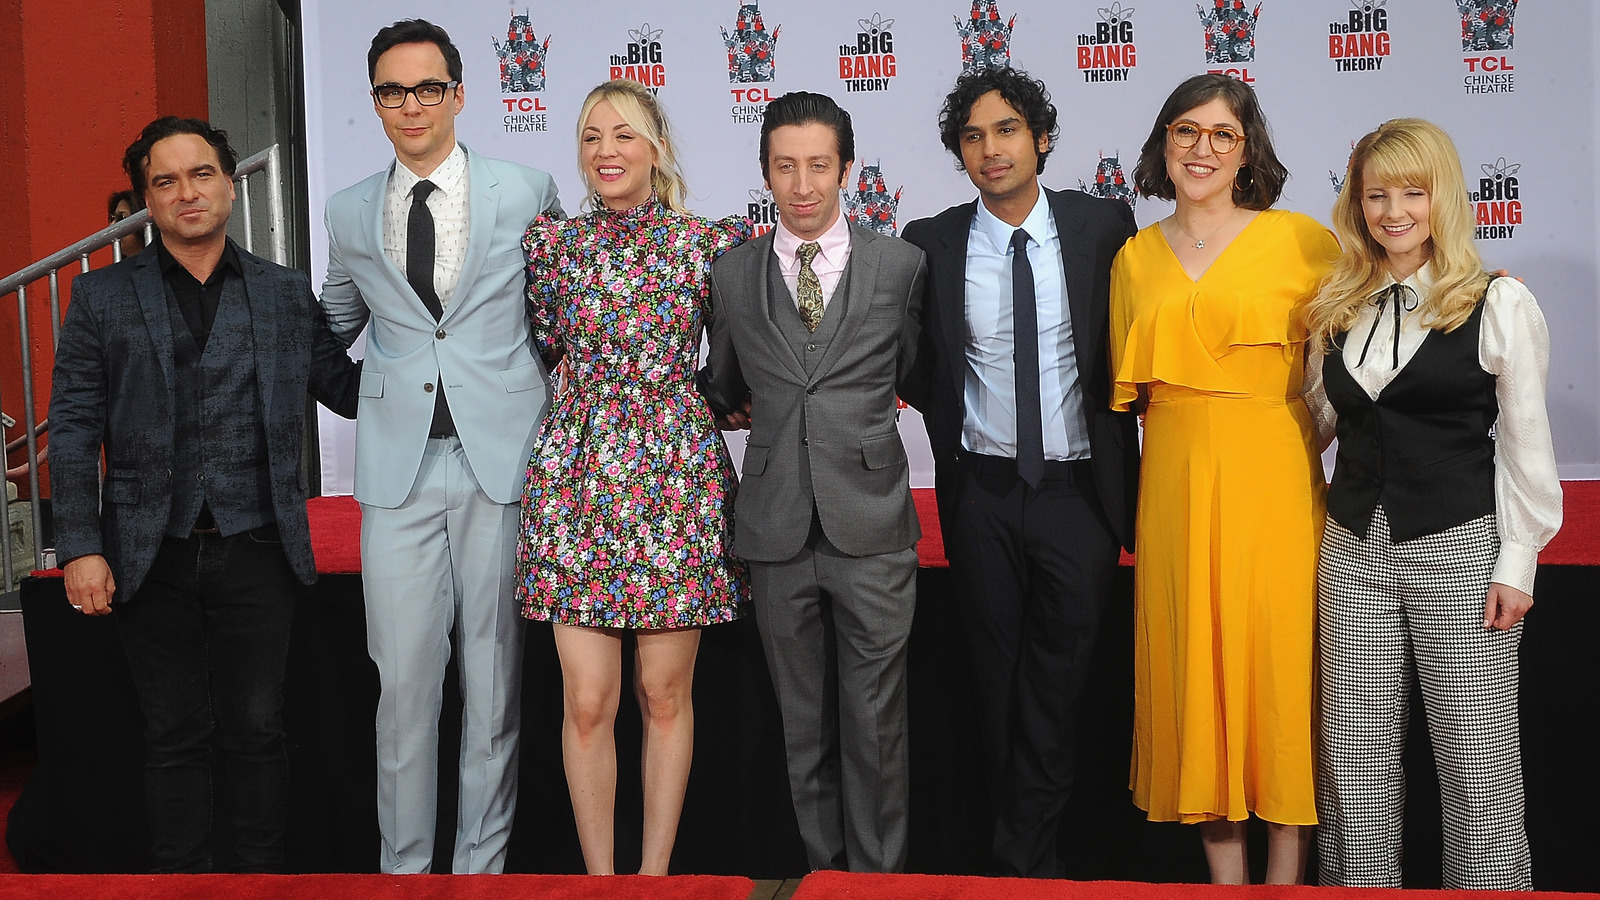 The Secret Big Bang Theory Wedding We Didn't Get To See